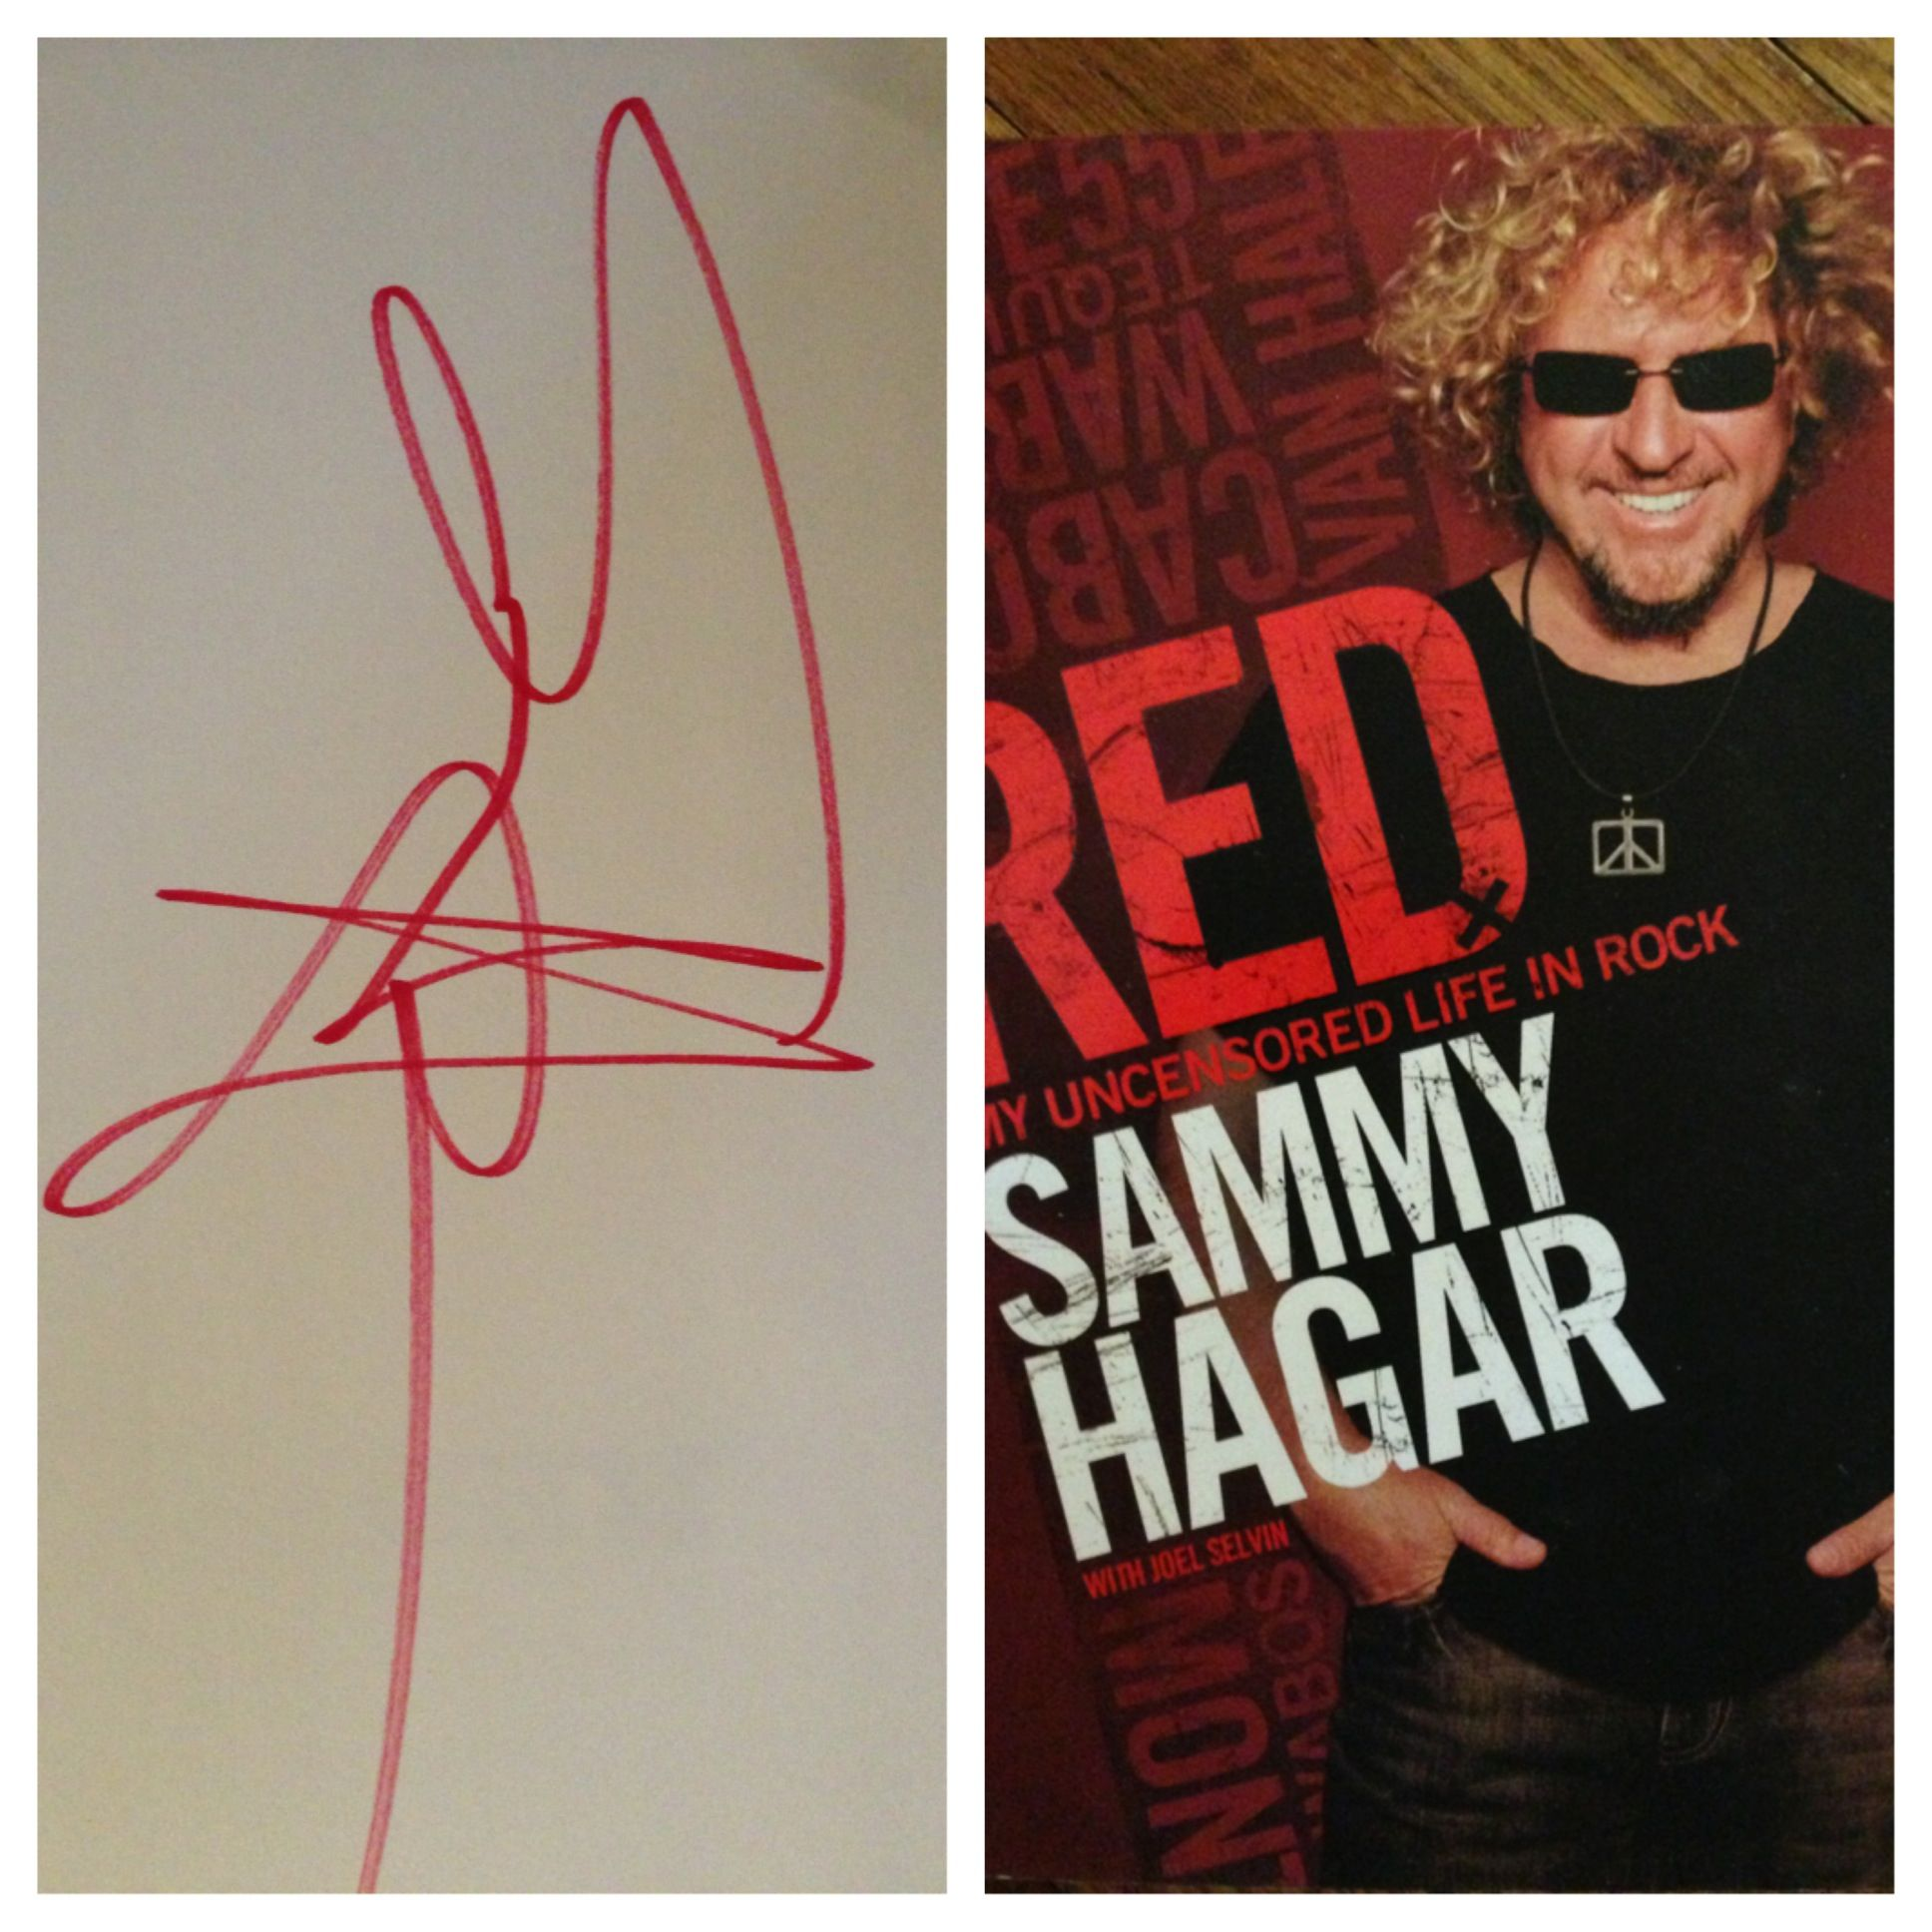 Sammy Hagar Sammy Hagar Autographed Book Rock Music